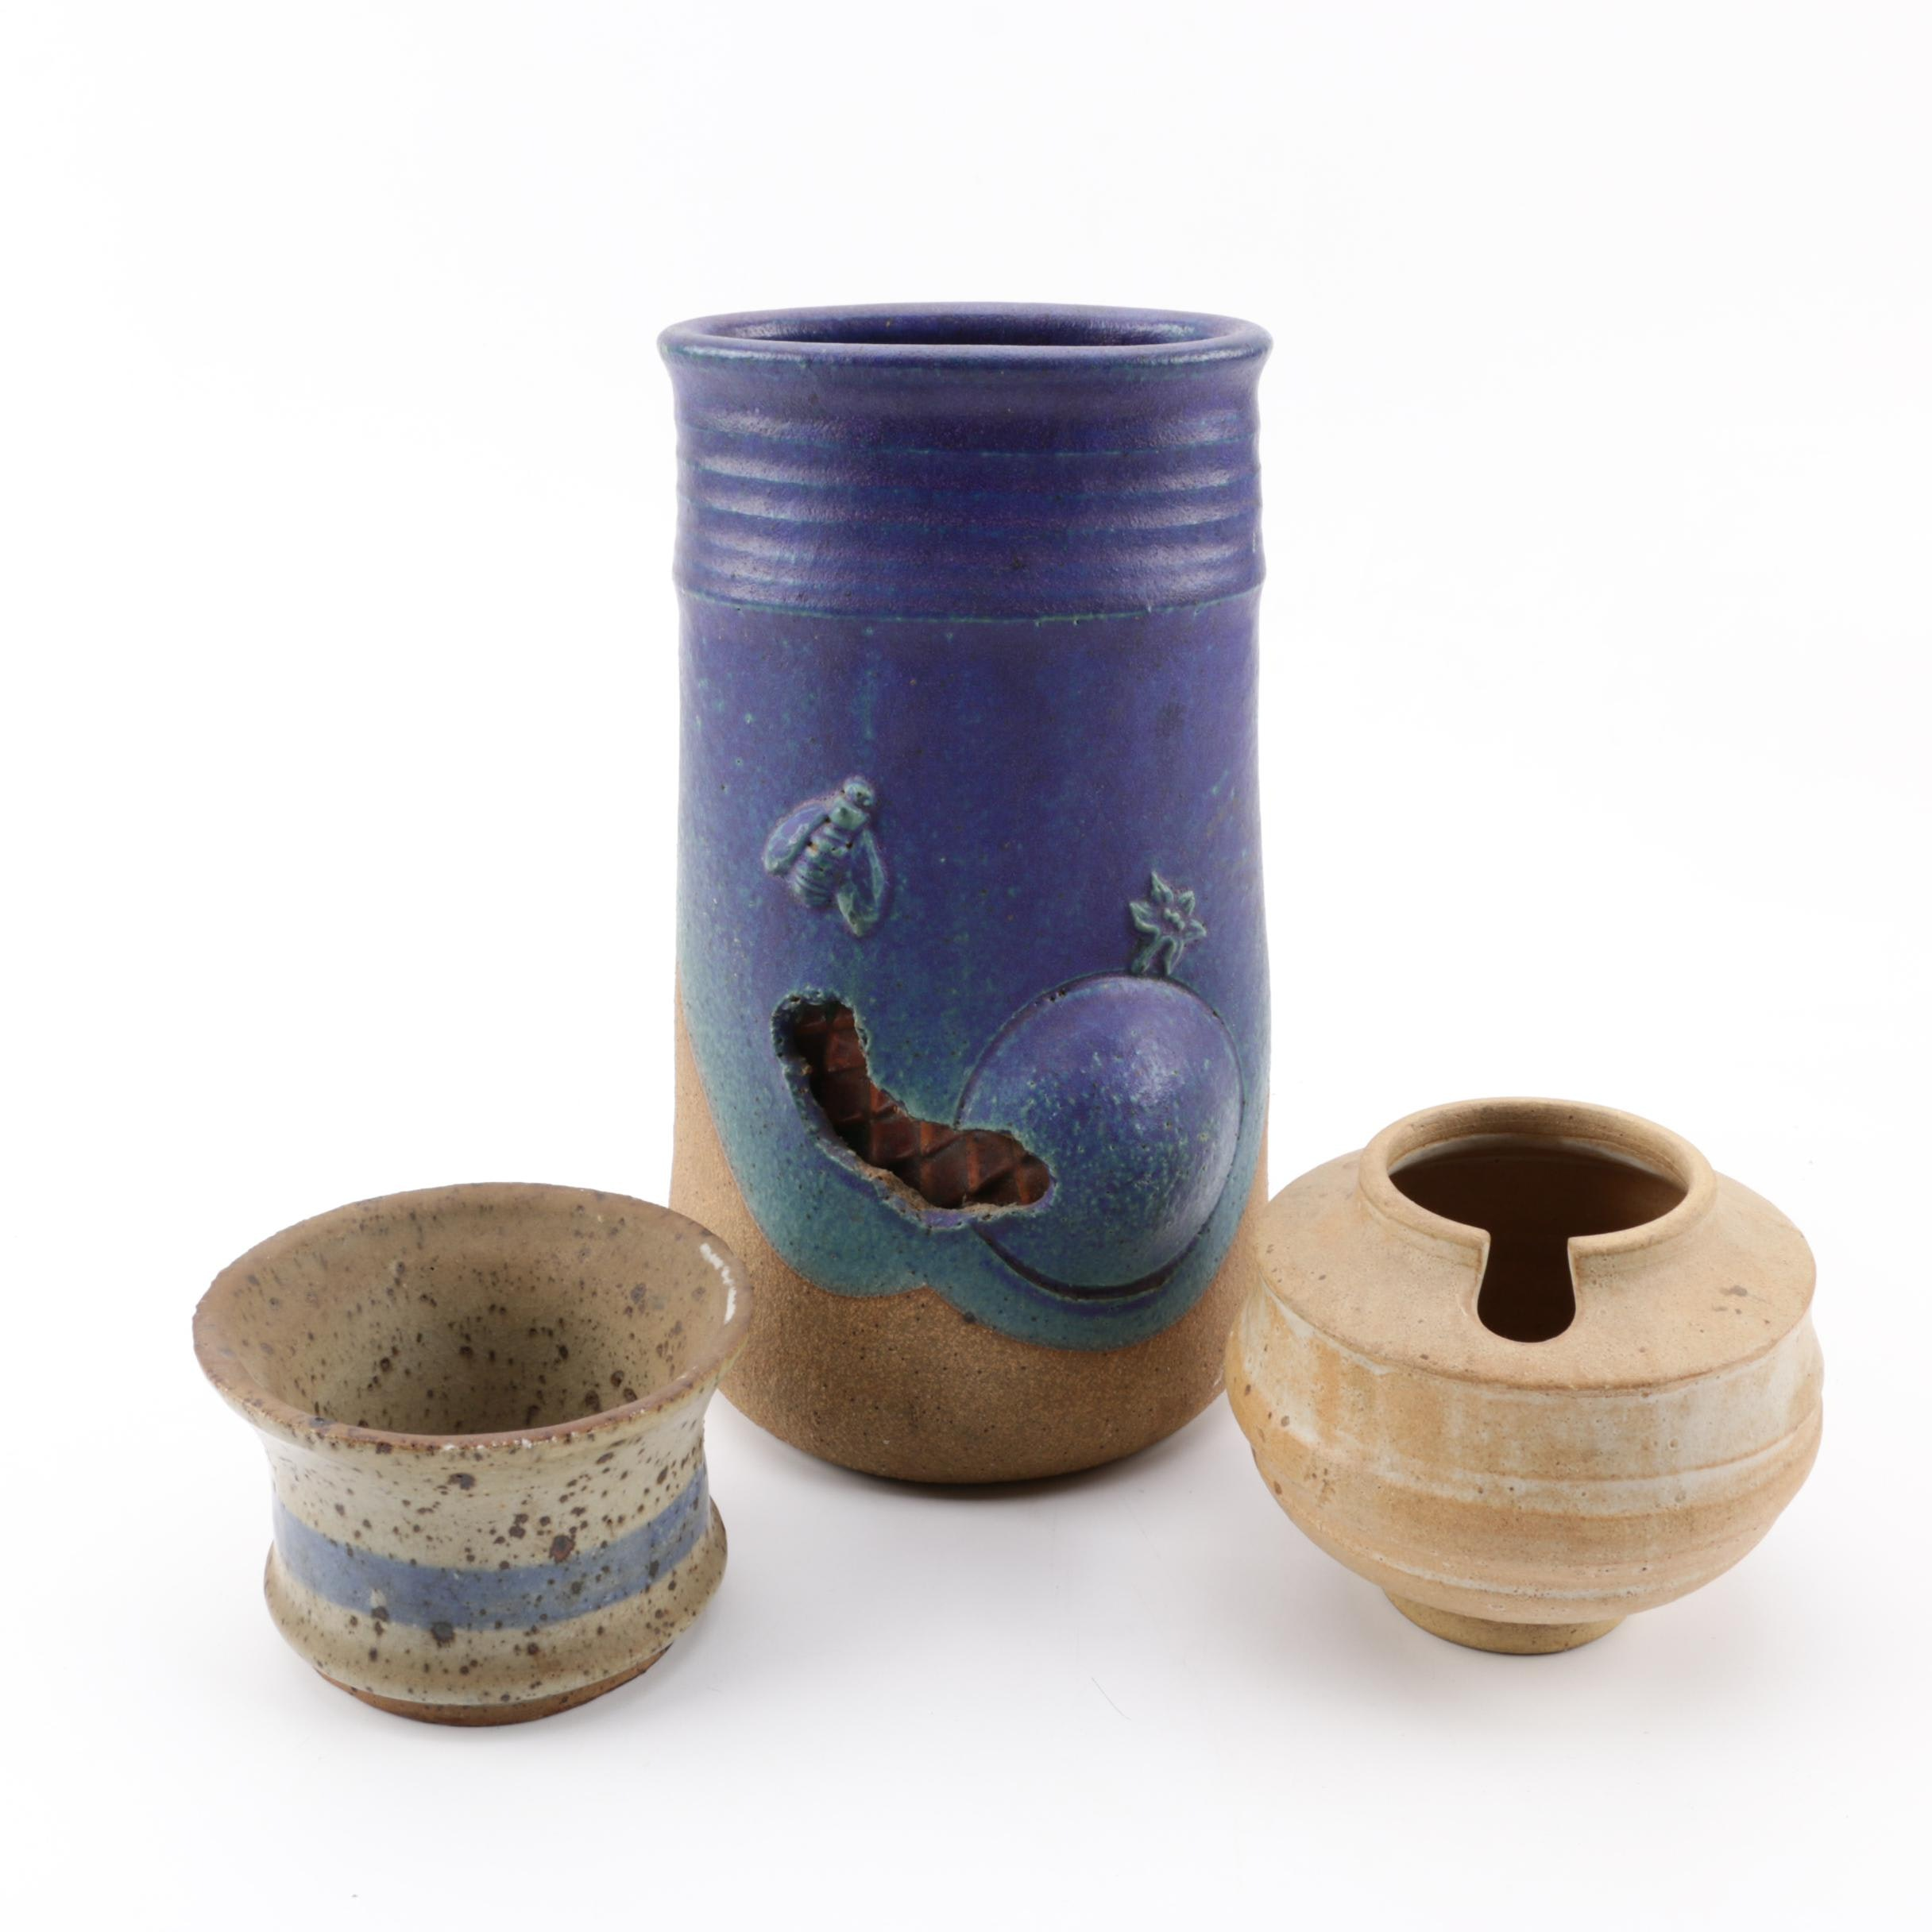 Michael Cohen Stoneware Vase and Other Art Pottery